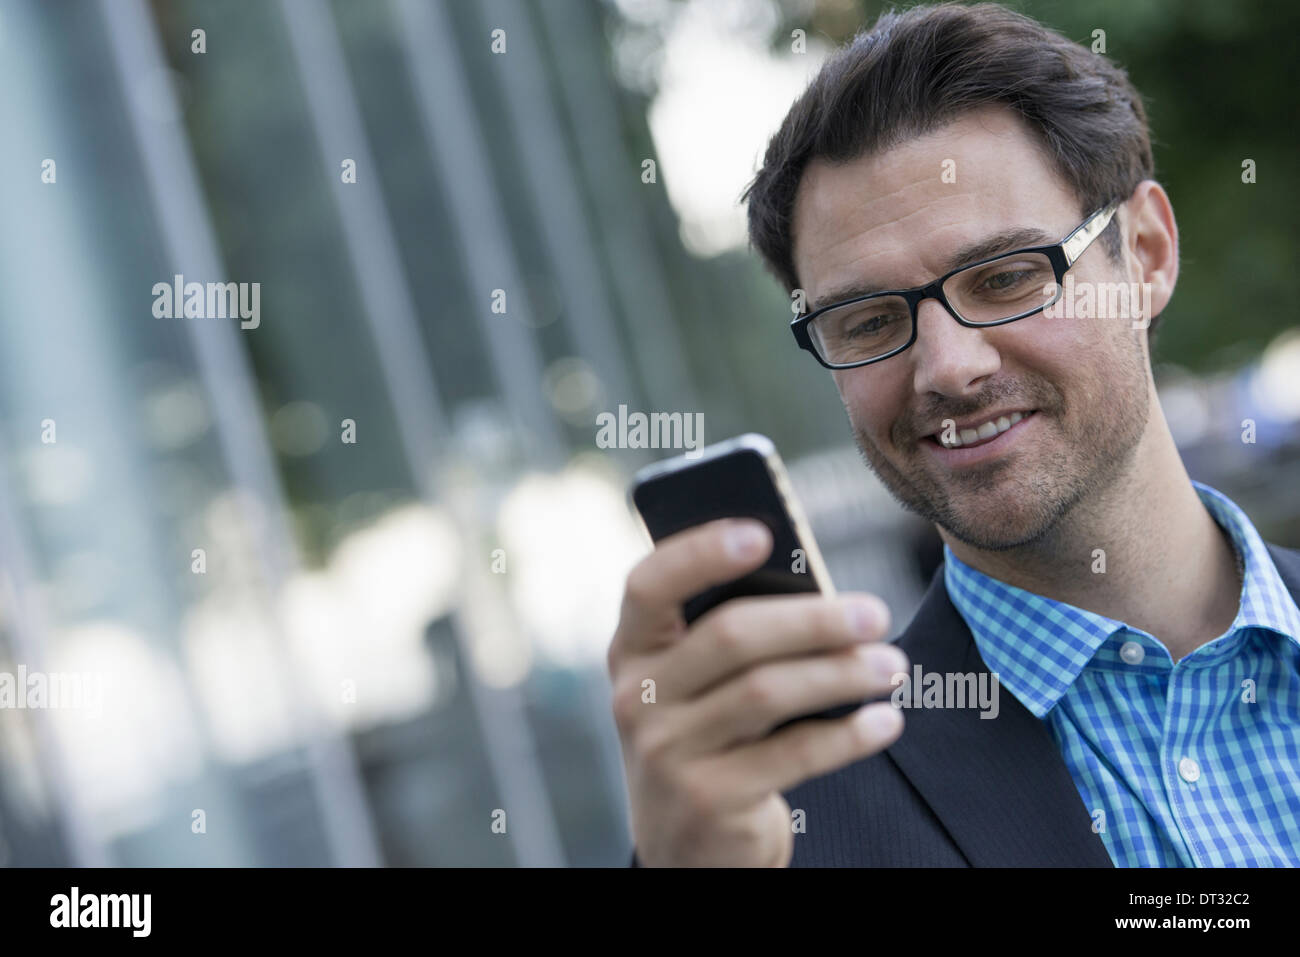 A man using his smart phone - Stock Image